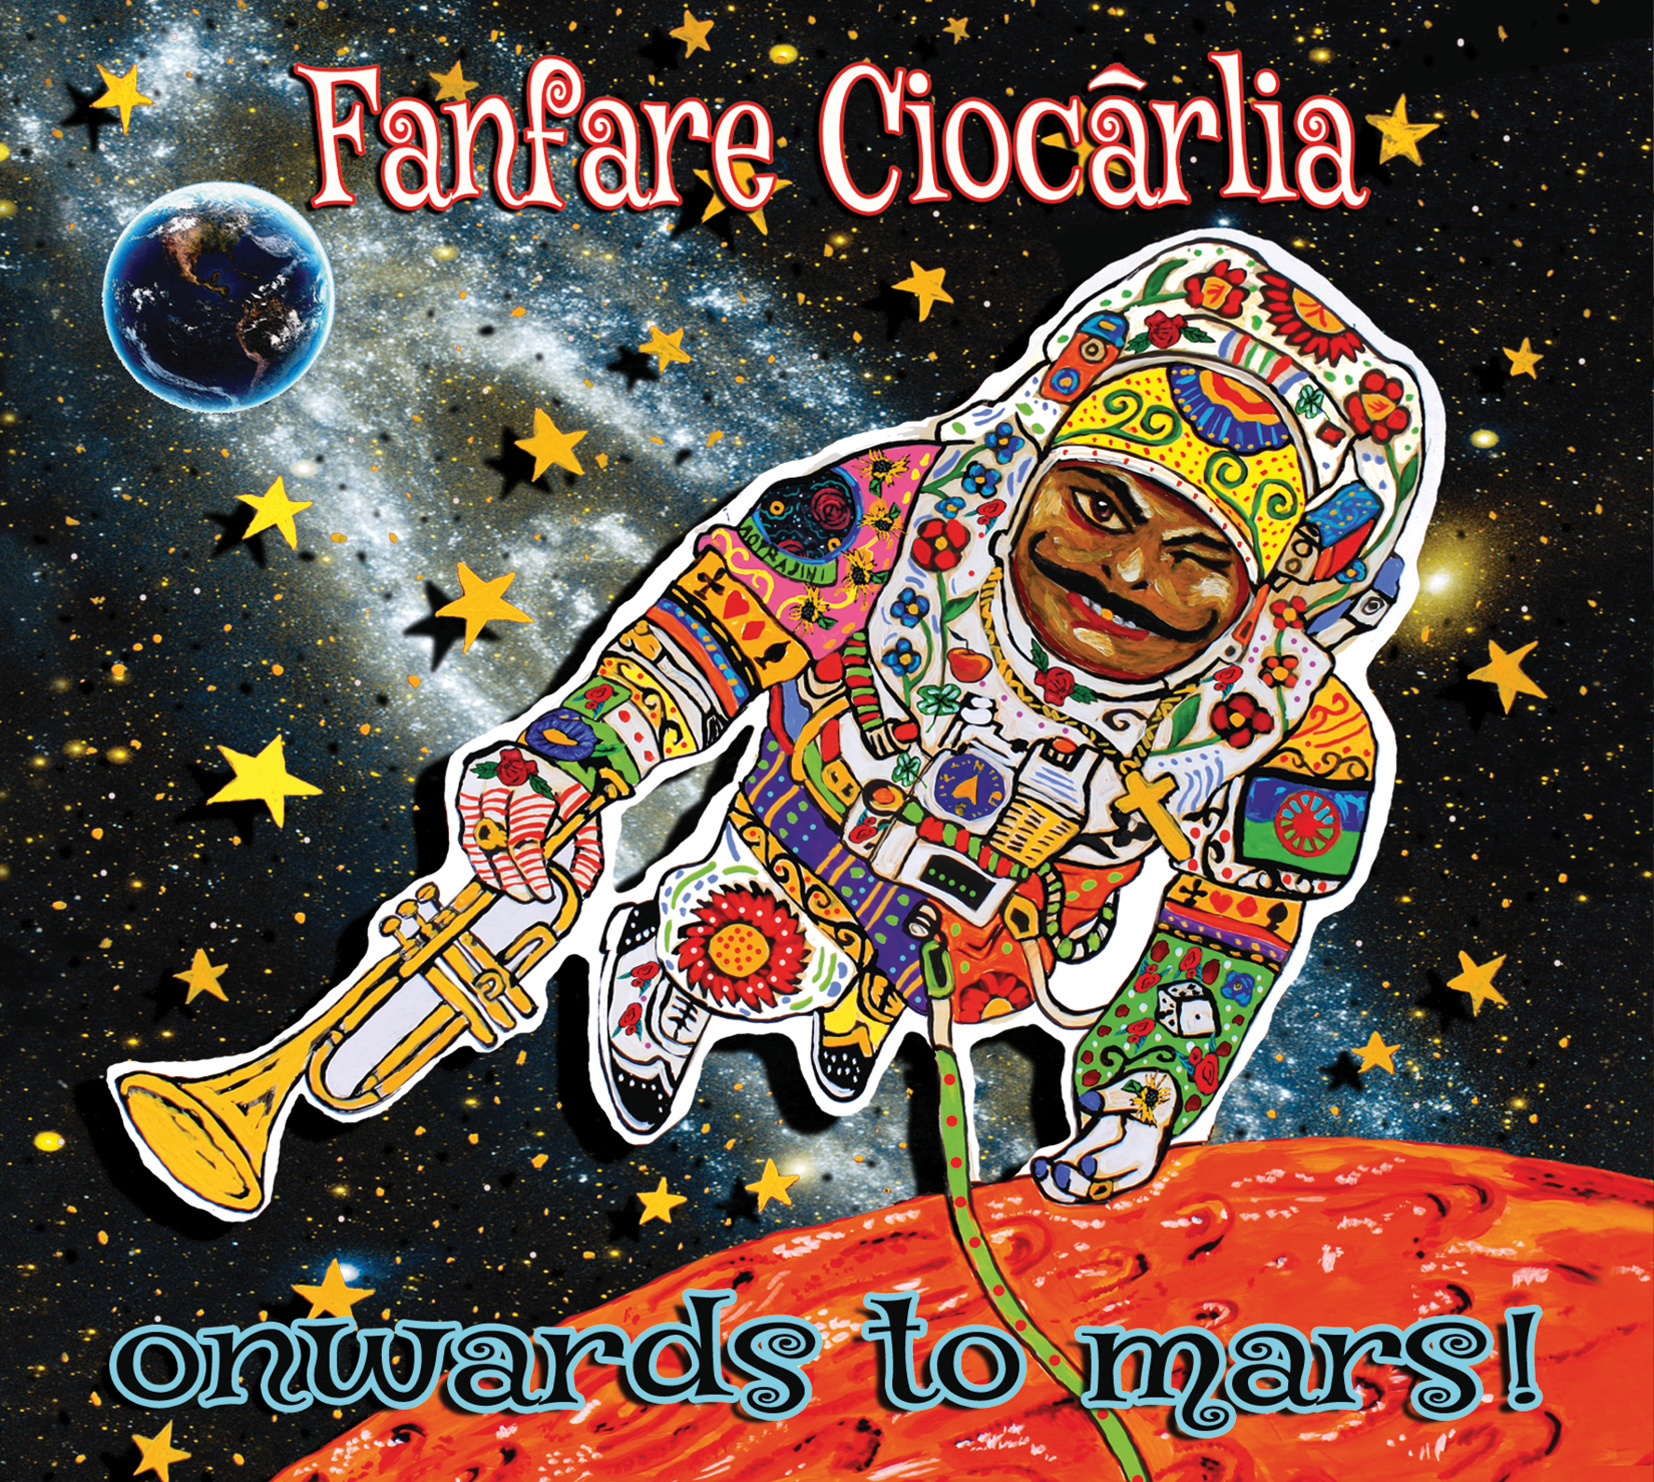 Fanfare-Ciocarlia---Onwards-to-Mars!-Cover